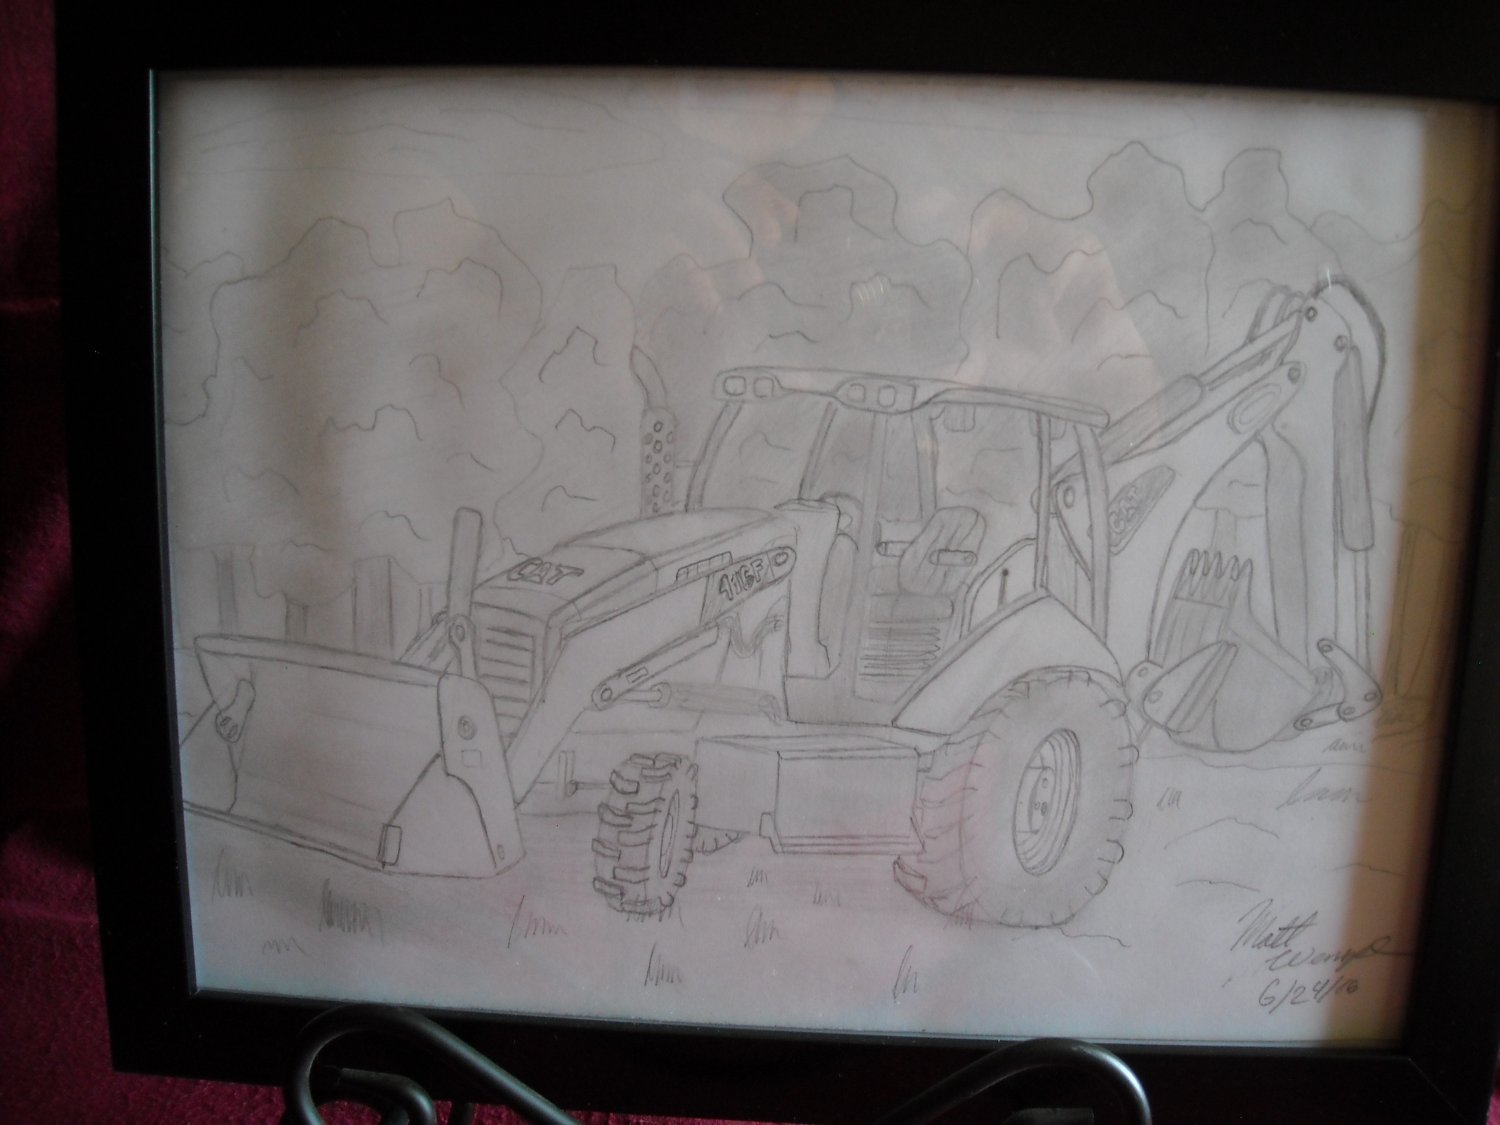 "Hand Drawn in Pencil Cat Caterpillar 416F Backhoe 9 x 12"" Art by Matt Wenzel"